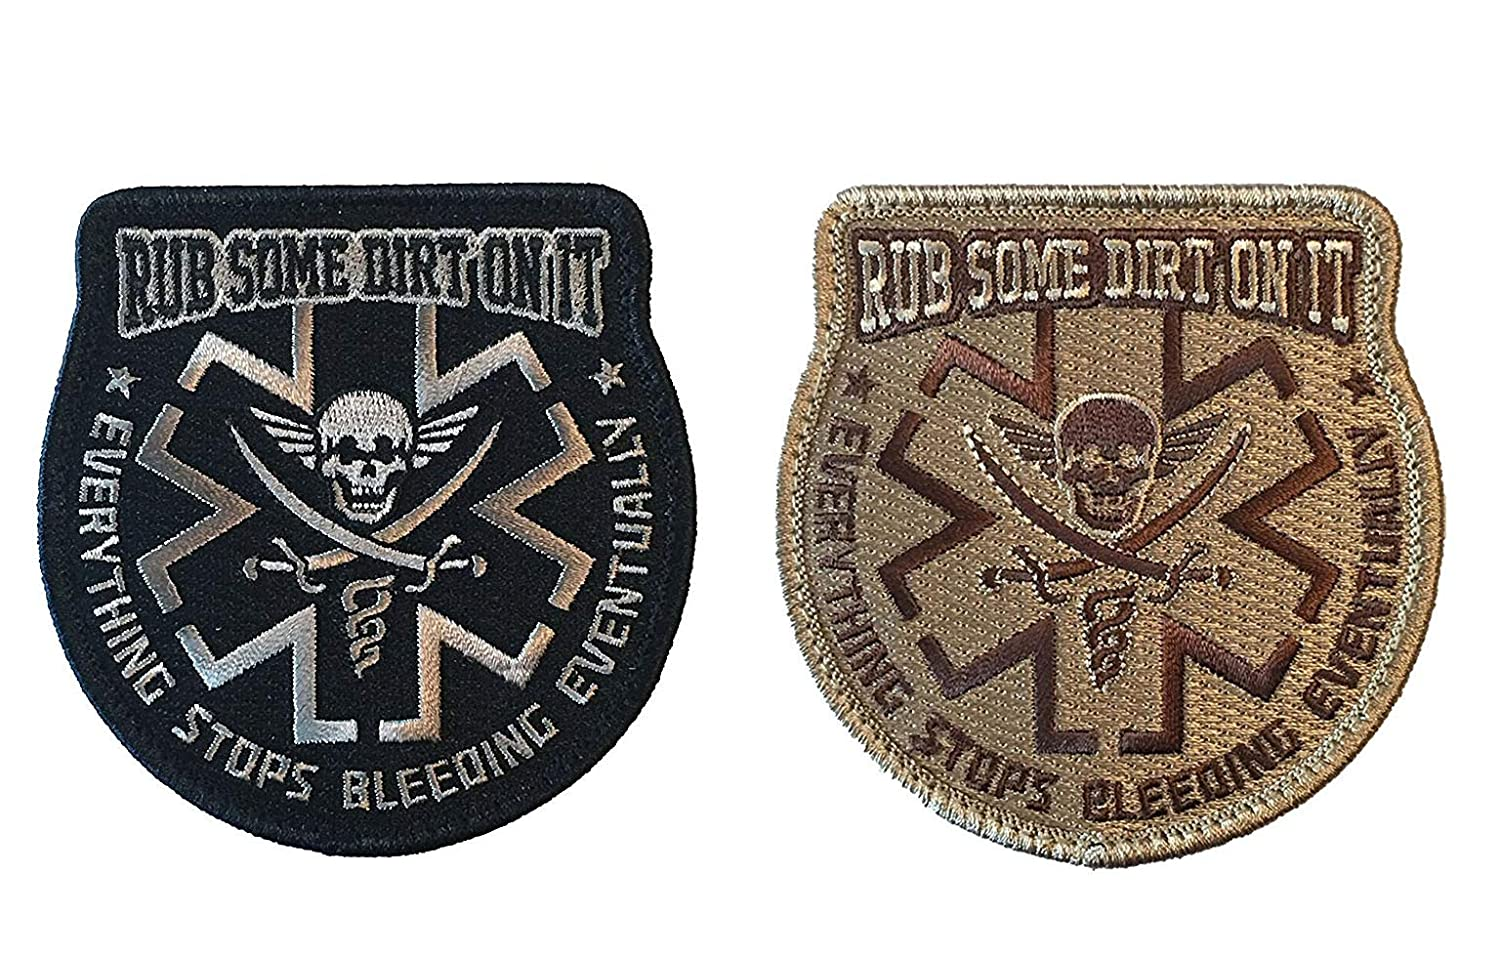 Antrix 2 Pieces Rub Some Dirt On It Medic Medical Patch EMS EMT Tactical Medical Aid Medical Care Morale Patches -3.53.5